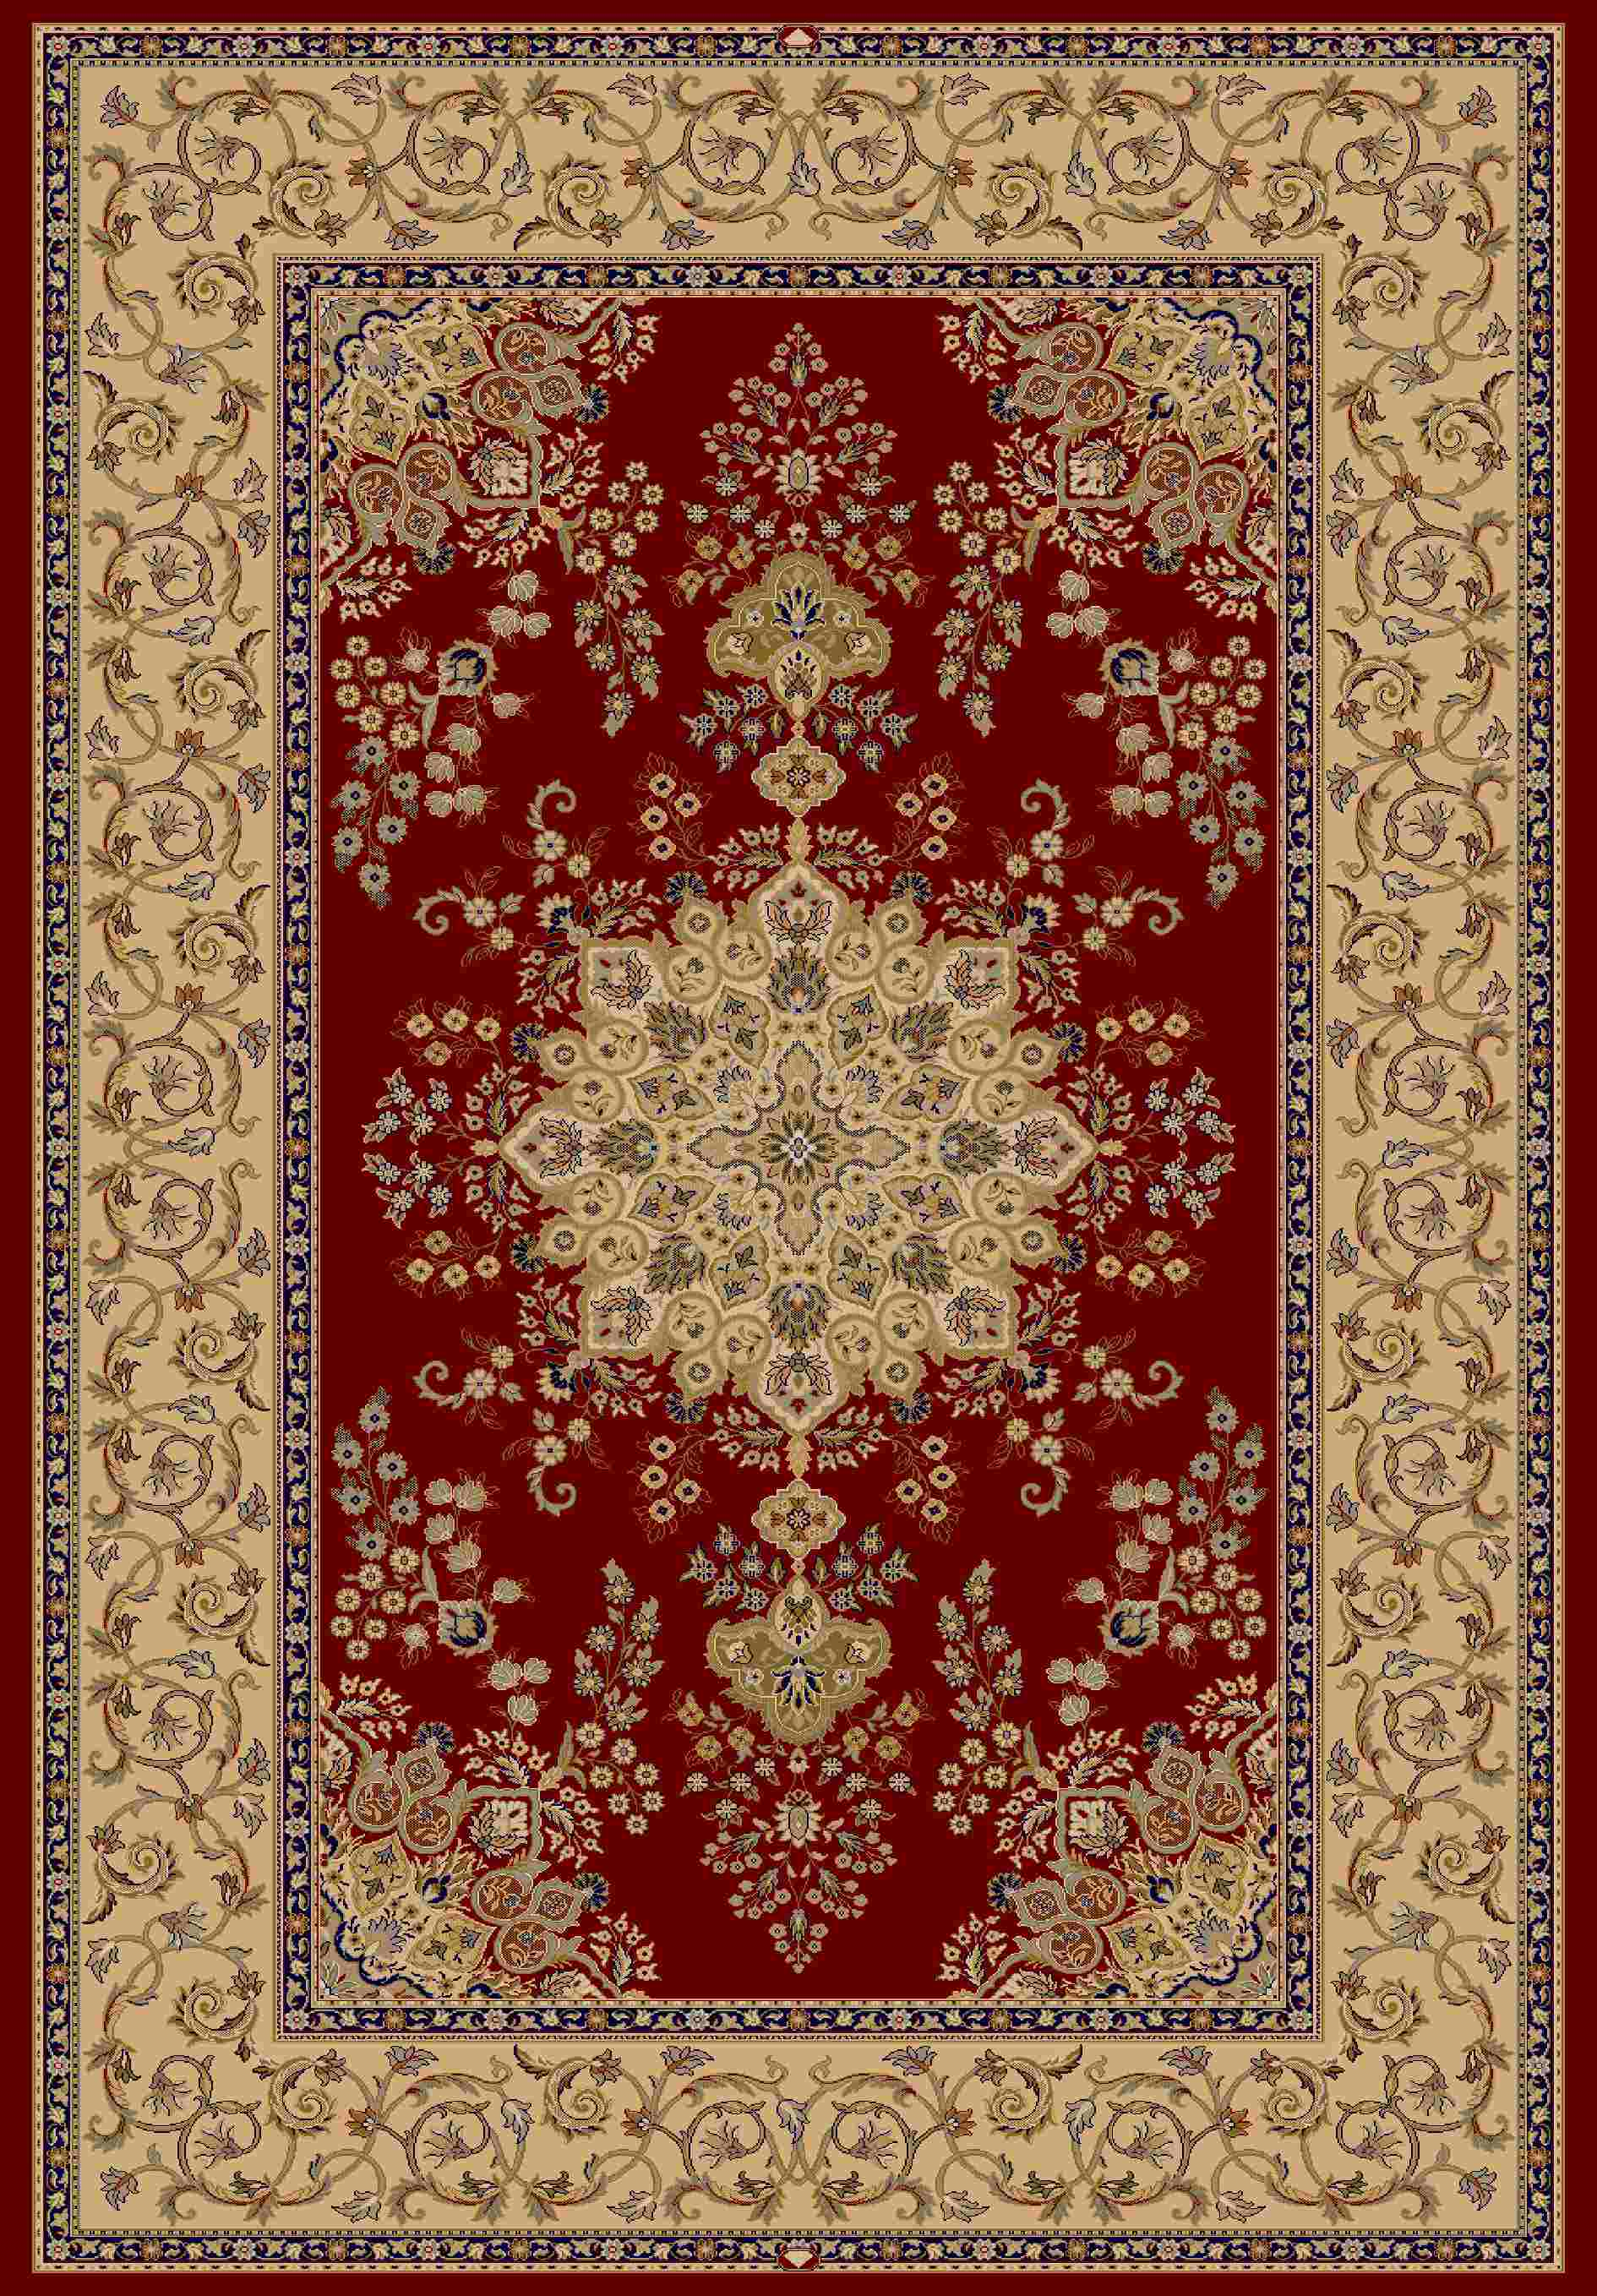 Dynamic Rugs Brilliant Classic Red 7201 Area Rug